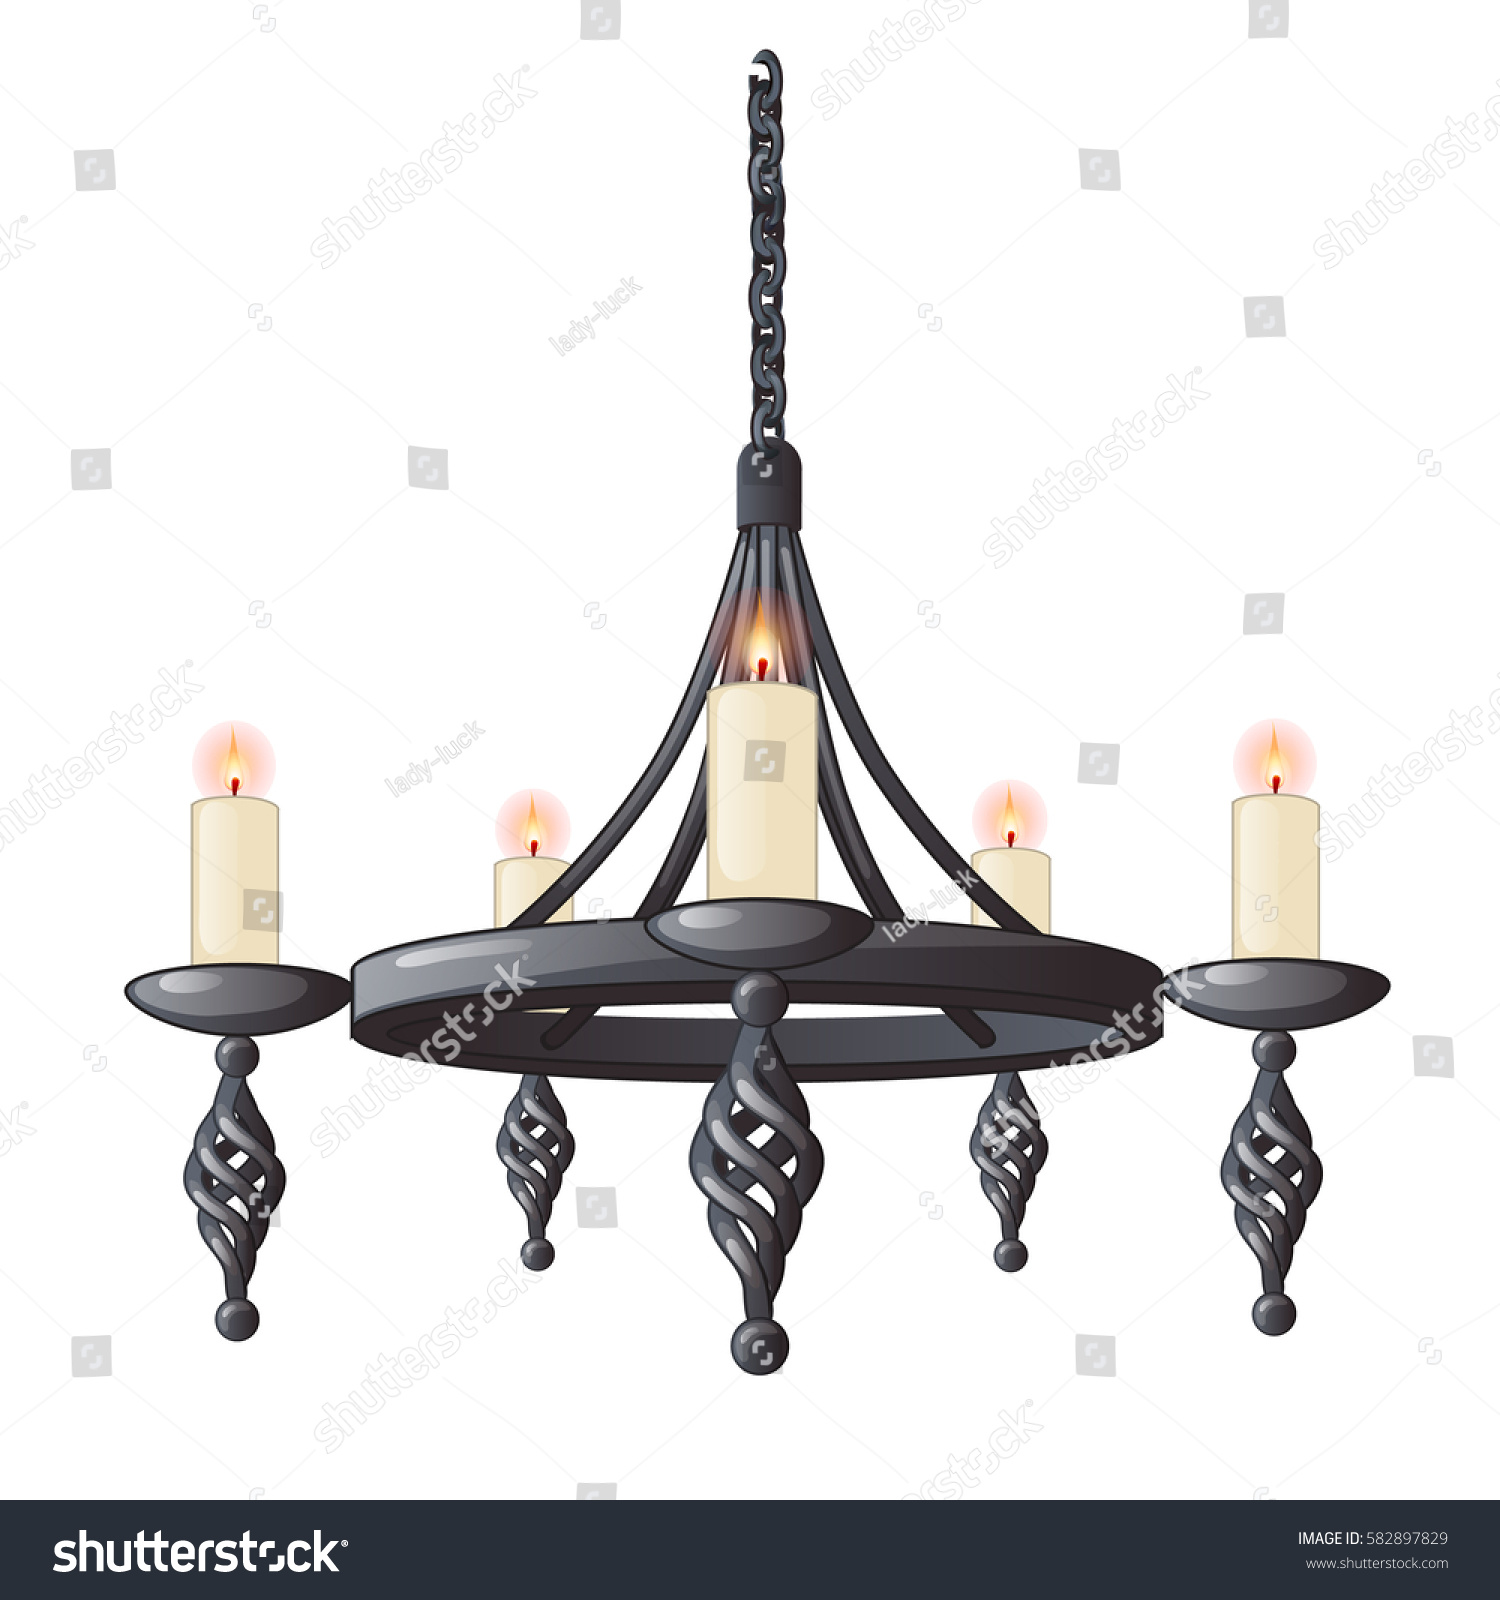 Massive Steel Chandelier Candles Me val Style Stock Vector